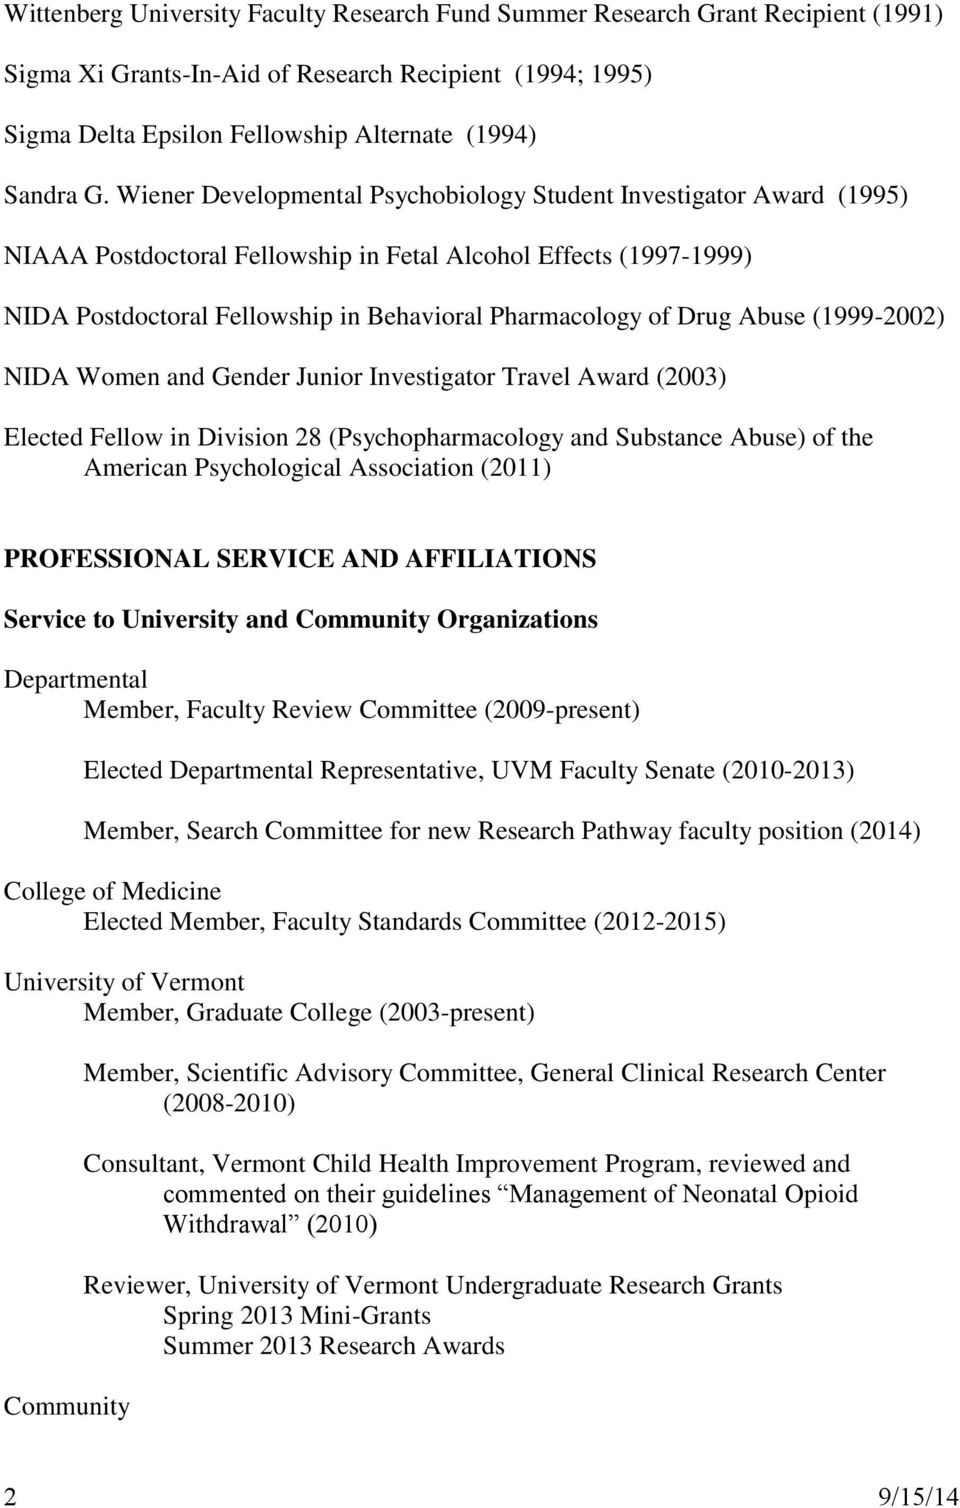 Abuse (1999-2002) NIDA Women and Gender Junior Investigator Travel Award (2003) Elected Fellow in Division 28 (Psychopharmacology and Substance Abuse) of the American Psychological Association (2011)